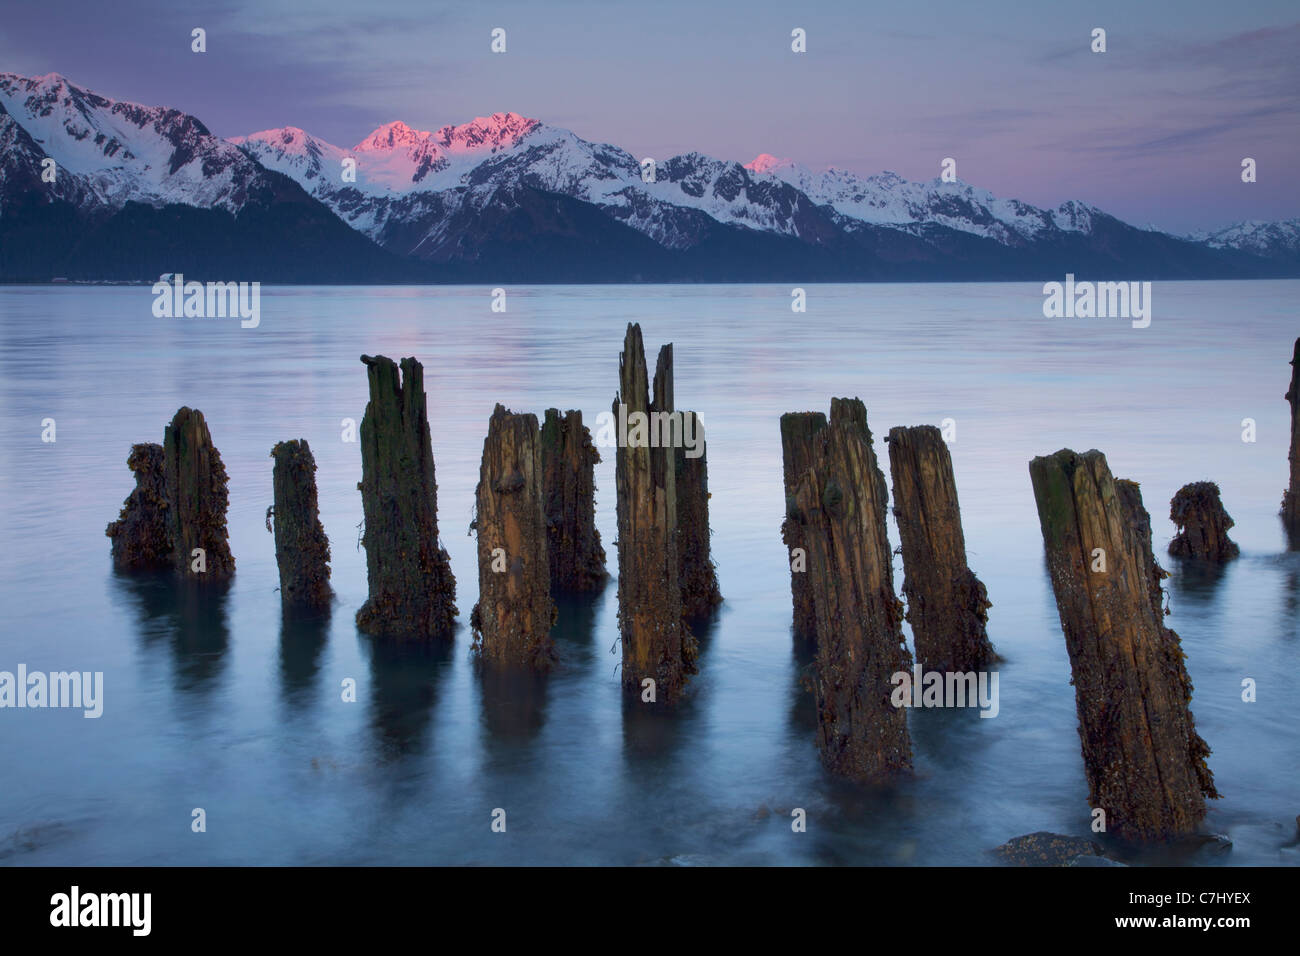 Résurrection Bay, Seward, Alaska. Photo Stock